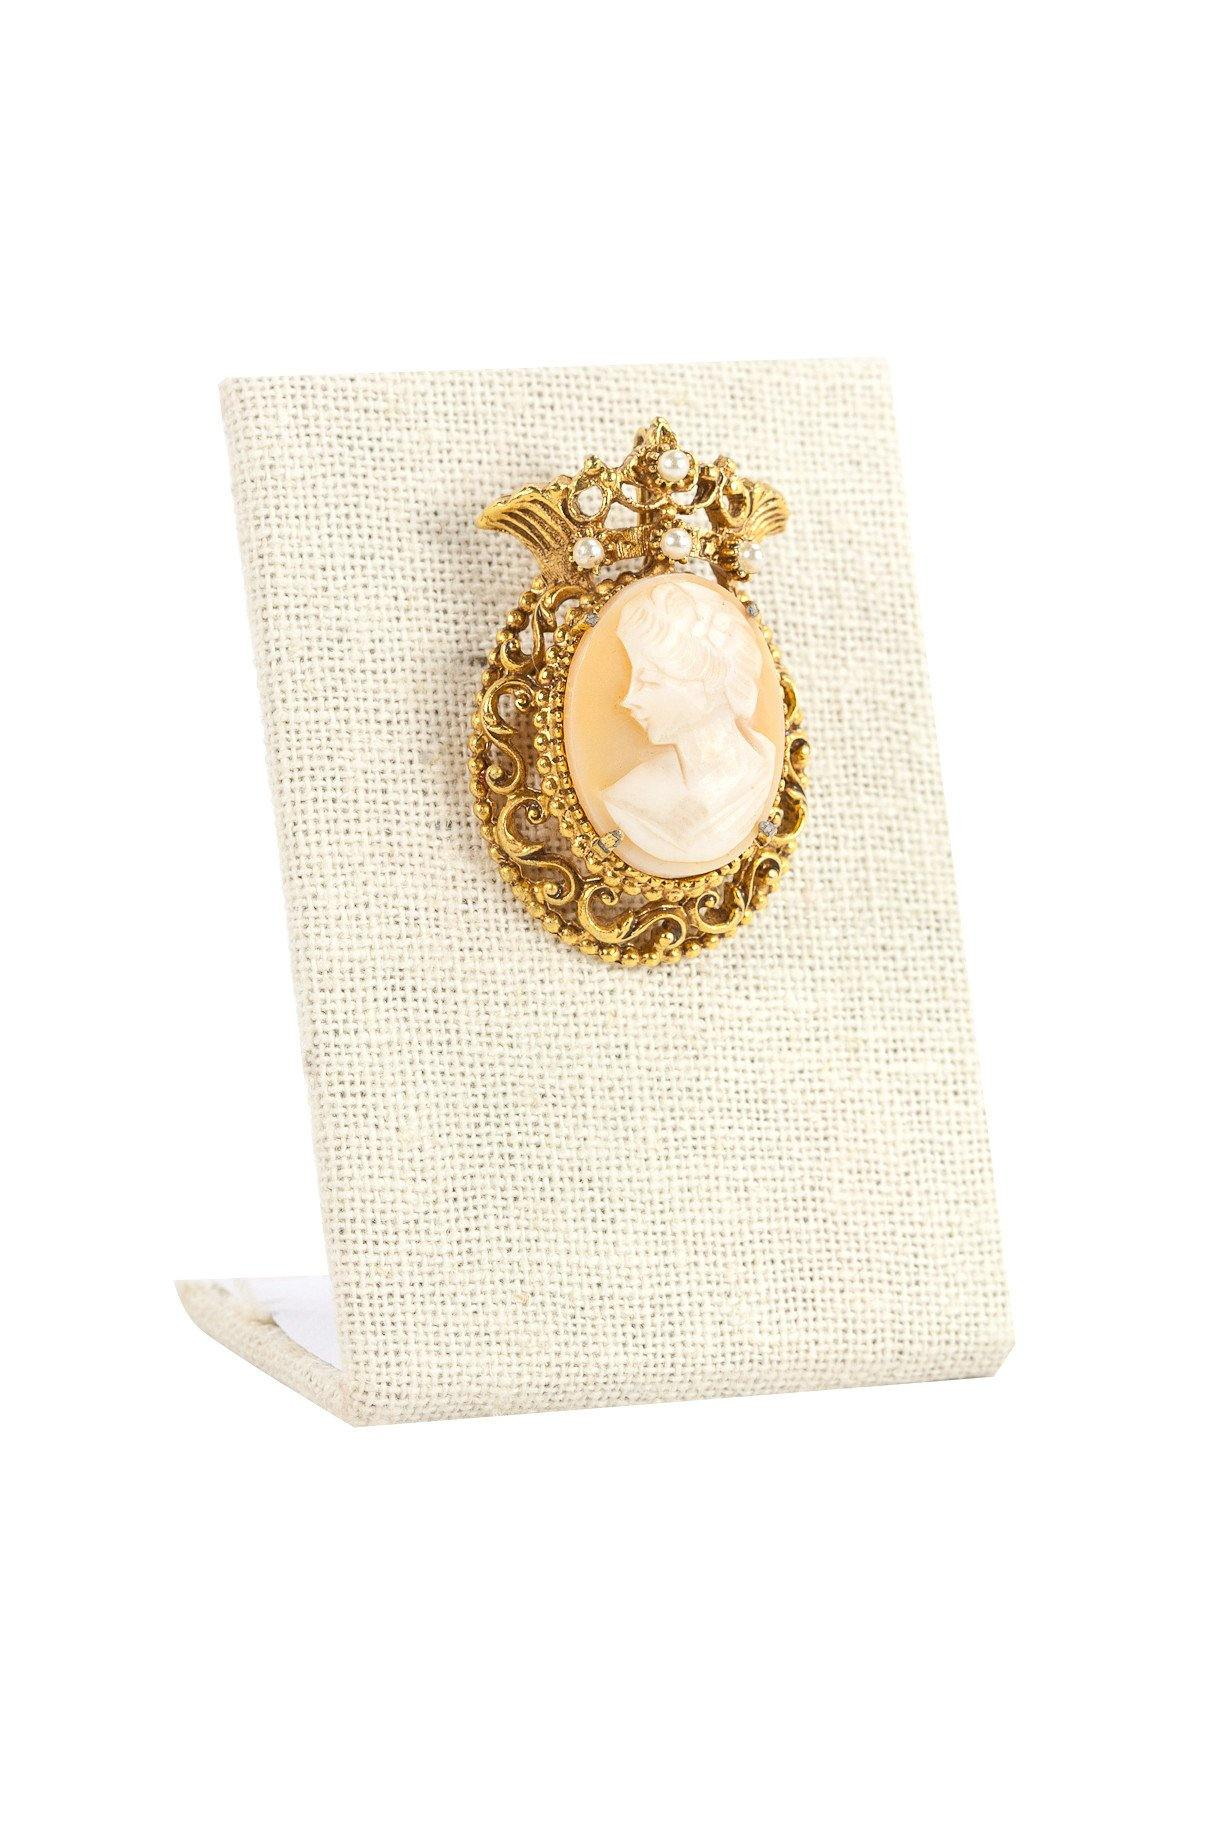 50's Florenza Pearl Embellished Statement Brooch